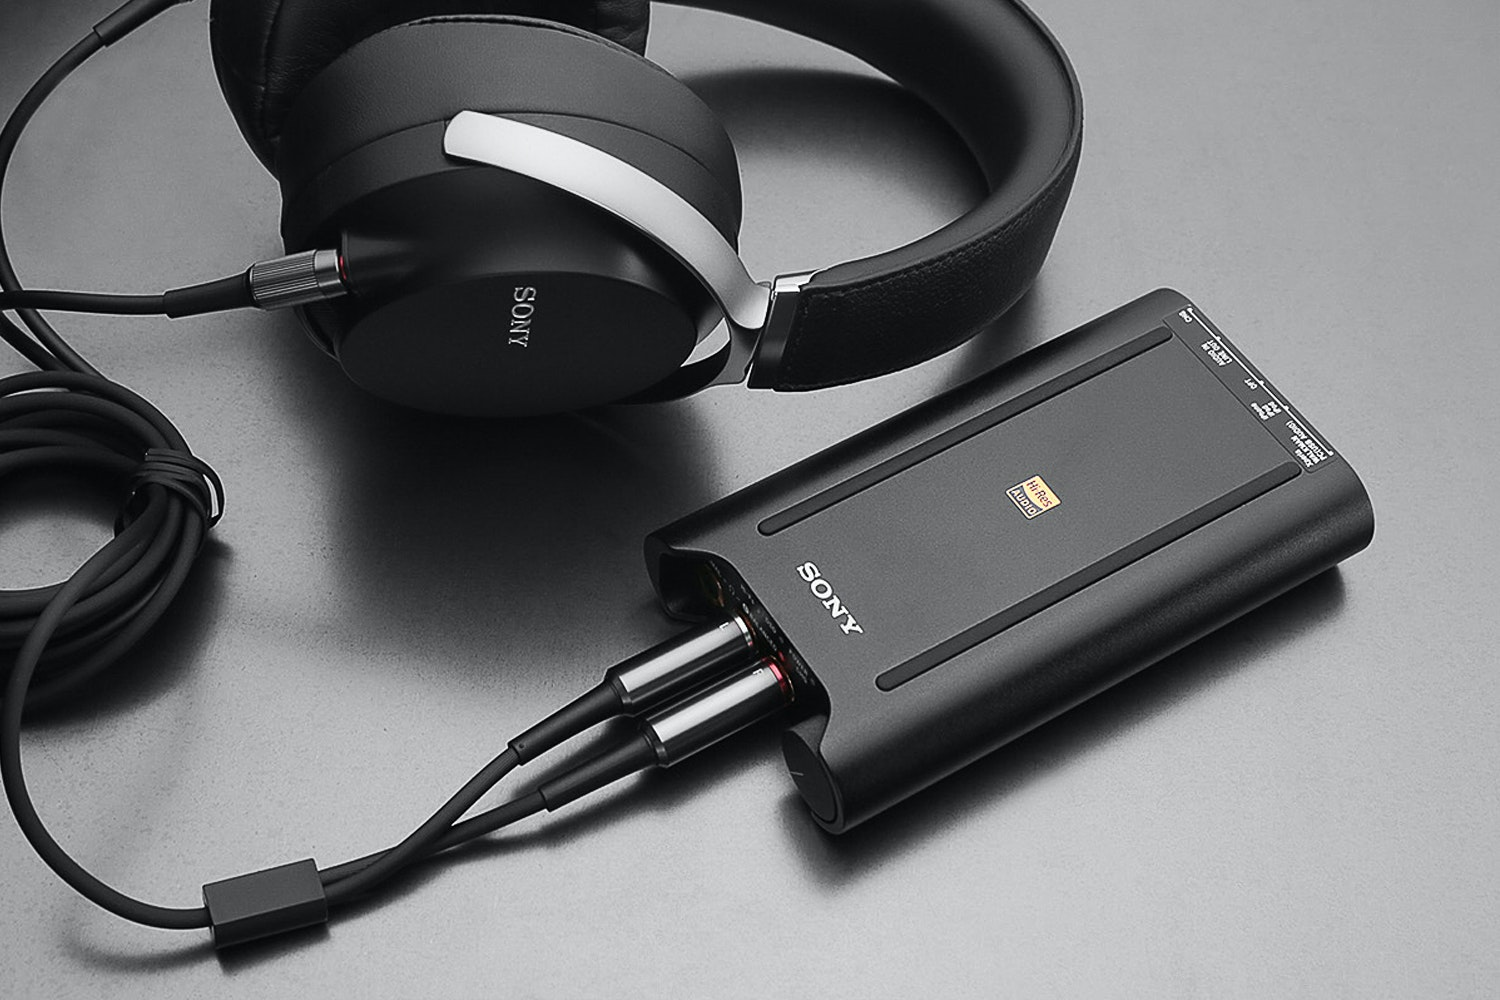 Sony PHA-3 Portable DAC/Amplifier Combo